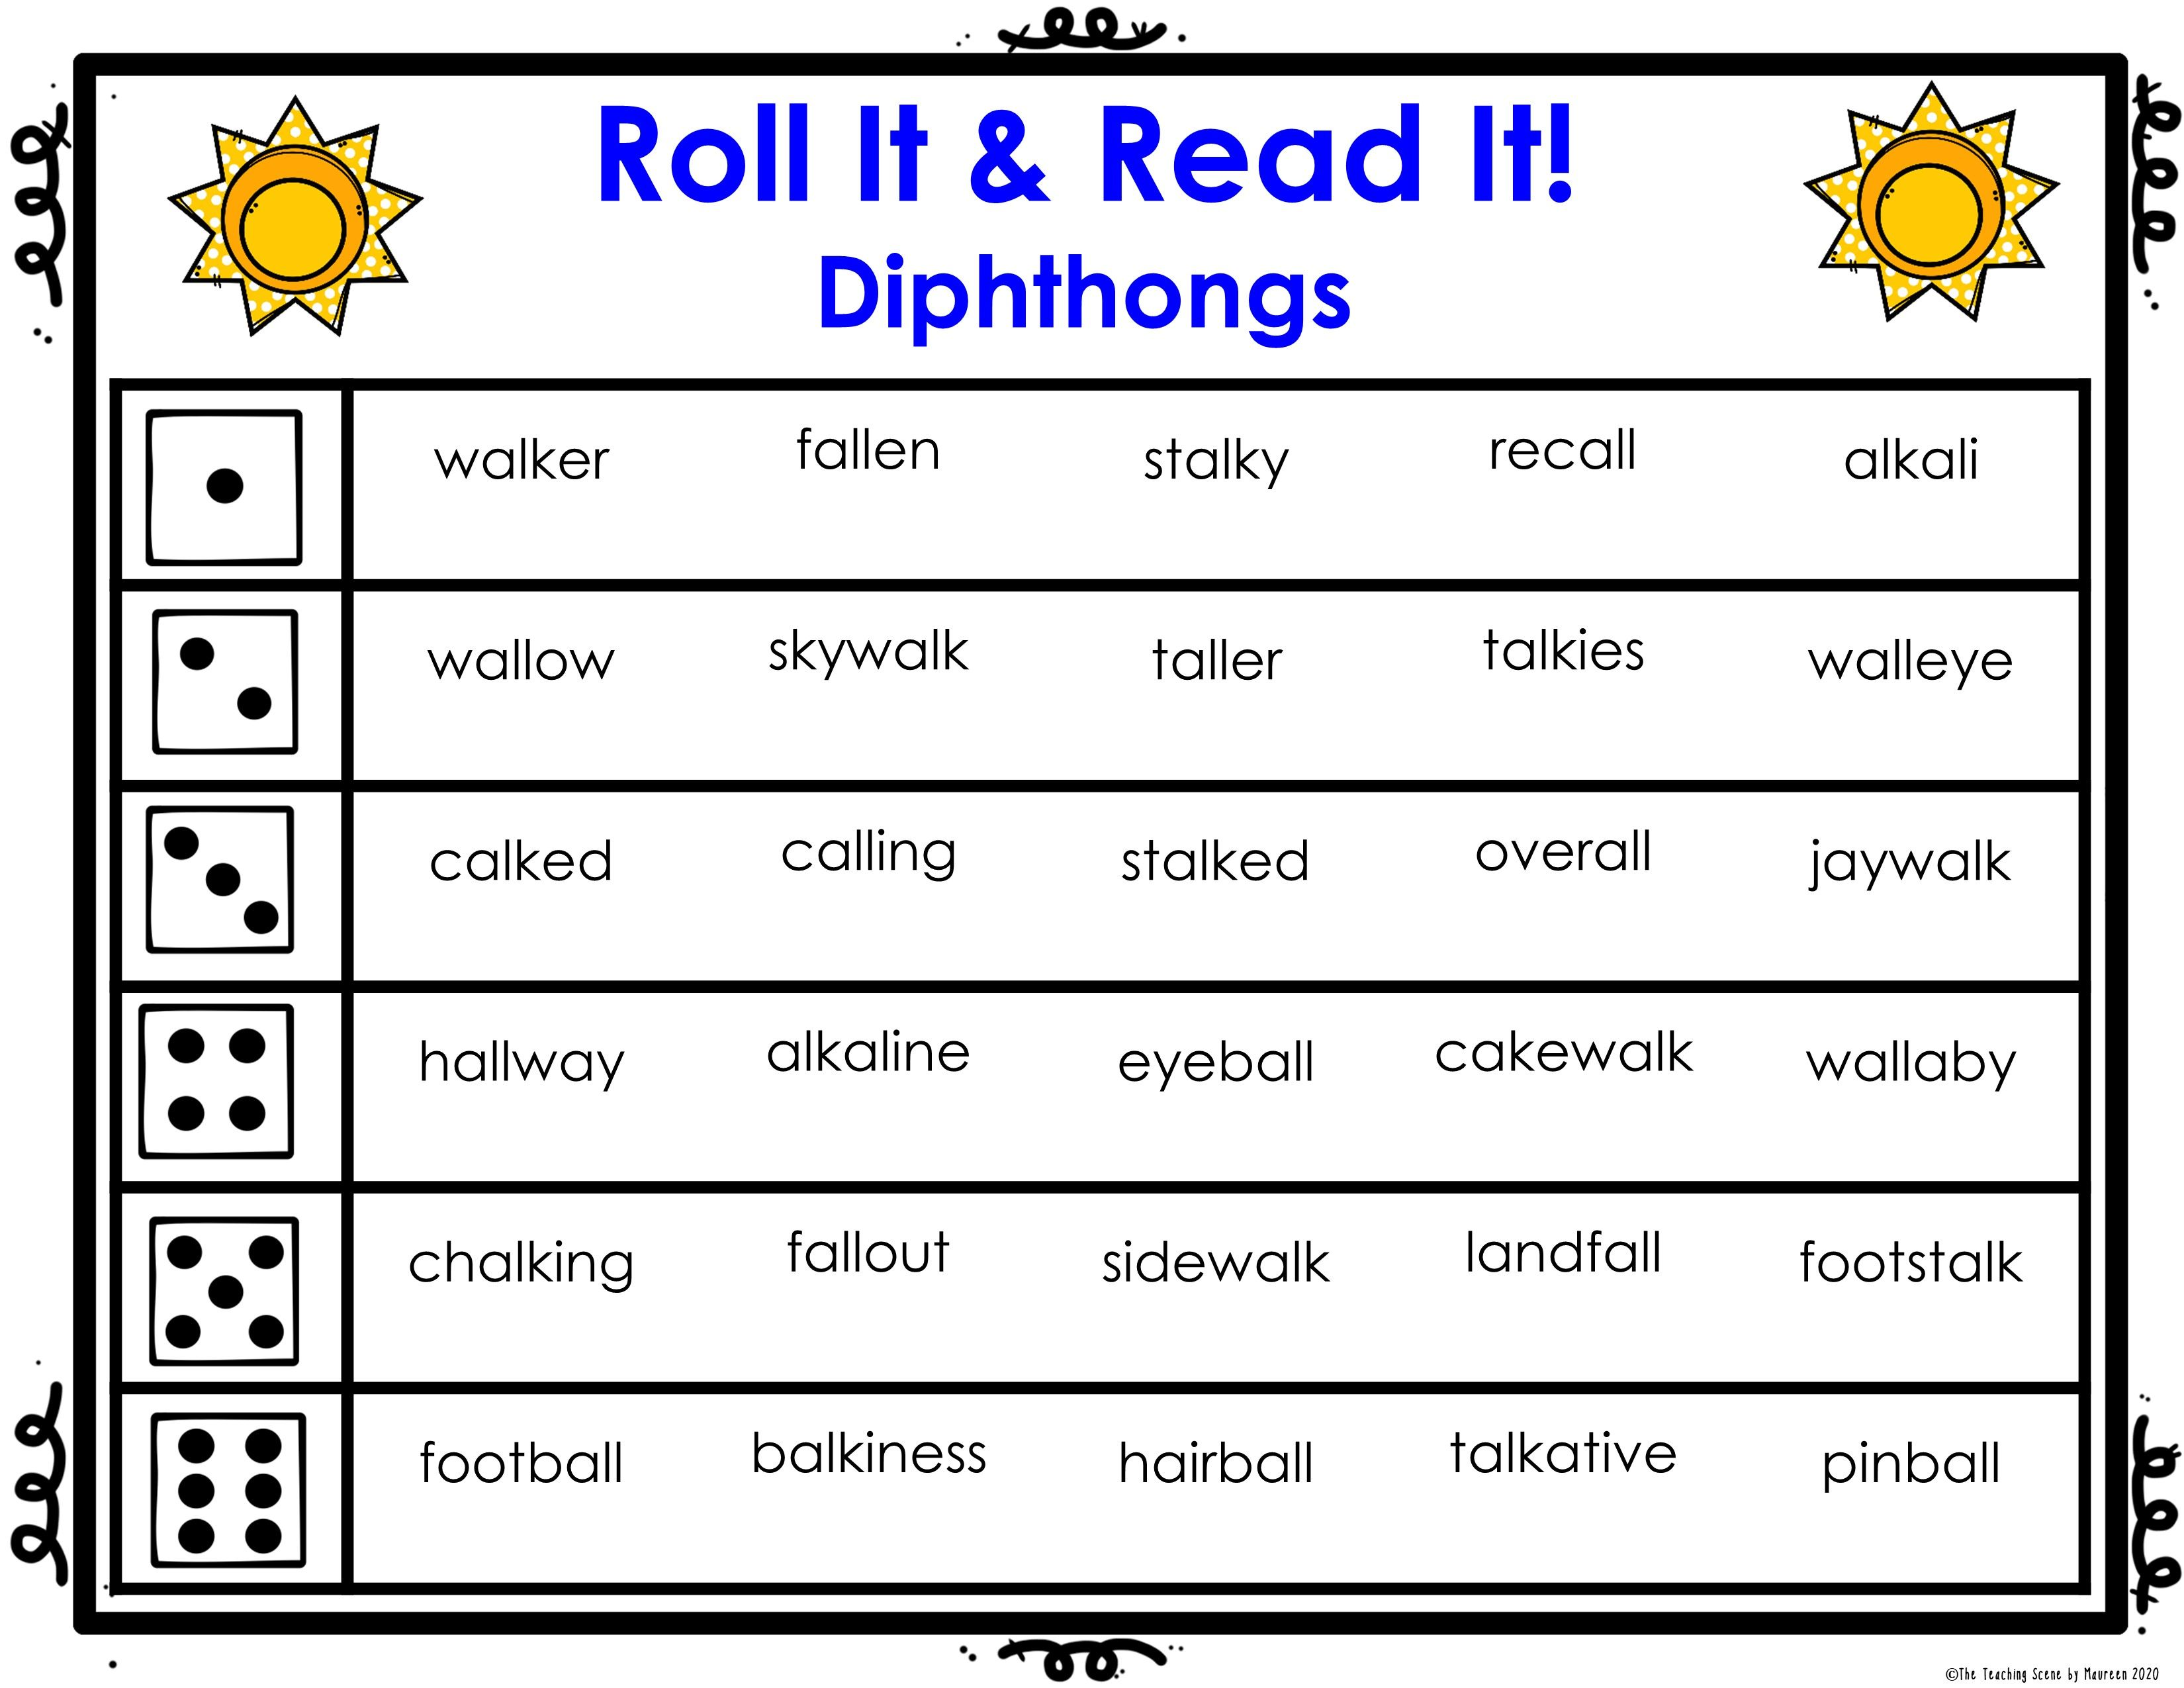 medium resolution of Diphthong Sentence Worksheets   Printable Worksheets and Activities for  Teachers